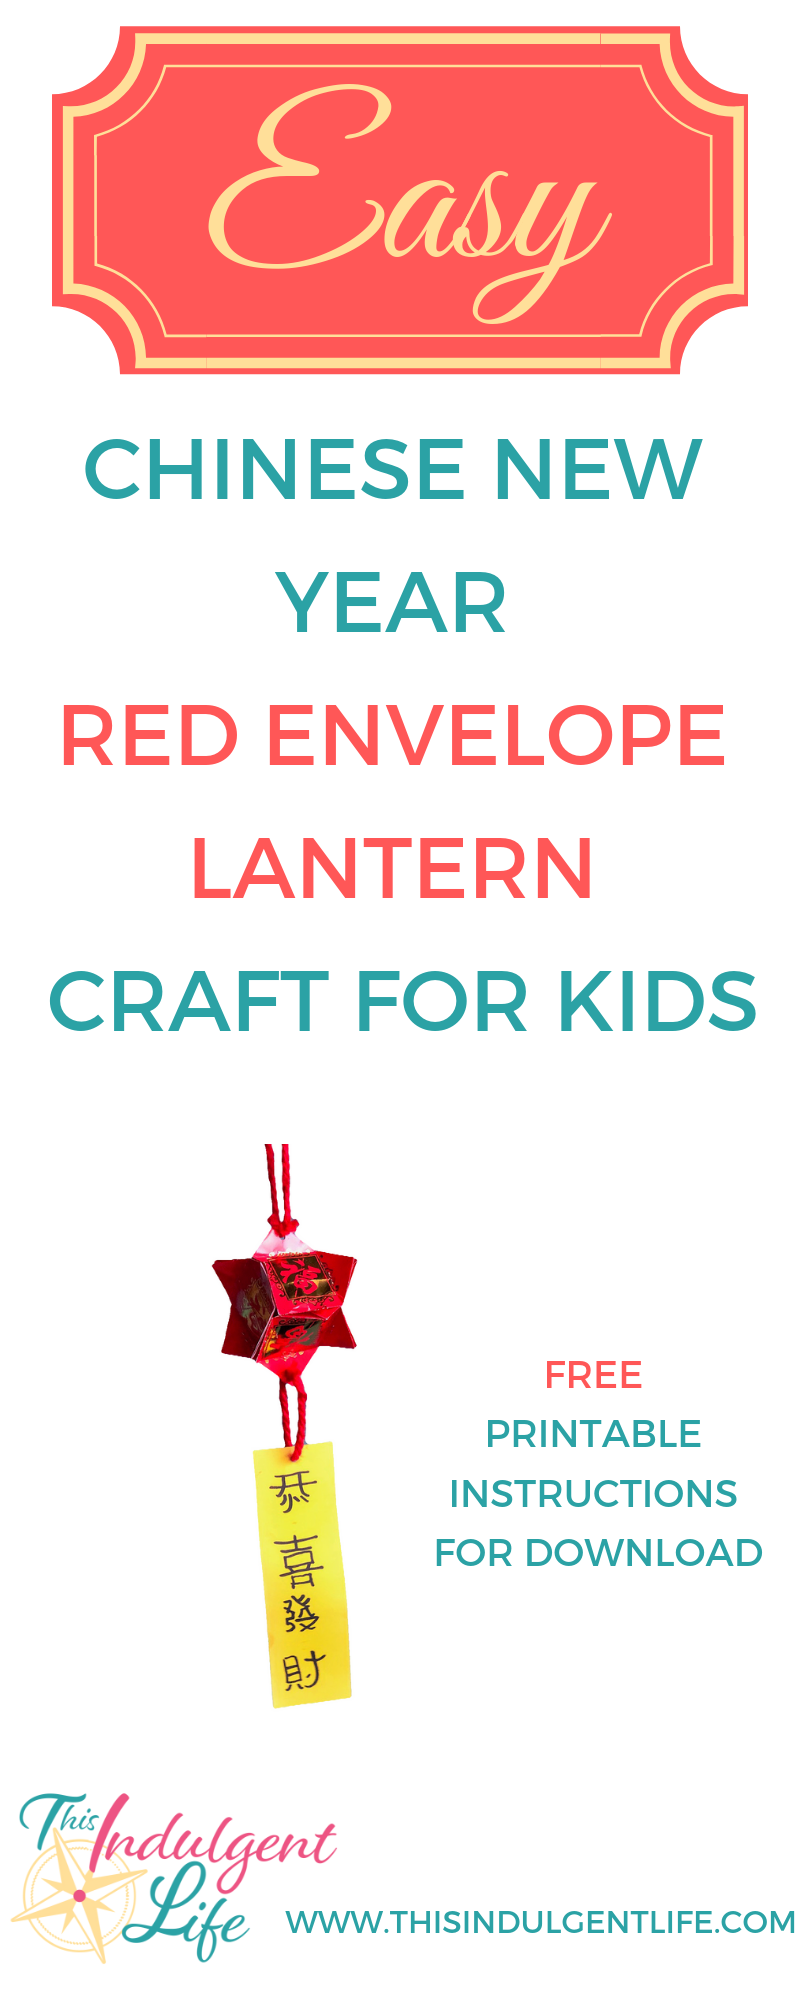 Easy Chinese New Year Red Envelope Lantern Craft For Kids | This Indulgent Life | Looking for an easy and authentic craft to do with your kids for Chinese New Years? This Chinese Lantern and Greeting craft takes about 10 minutes and requires few supplies. Don't forget to download the free printable! | #CNYlanterncraft #freeprintable #kidscrafts #cnycraft #authenticchinesecraft #chinesenewyeargreeting #laiseecraft #redenvelopecraft #activitiesforkids #easycraftsforkids